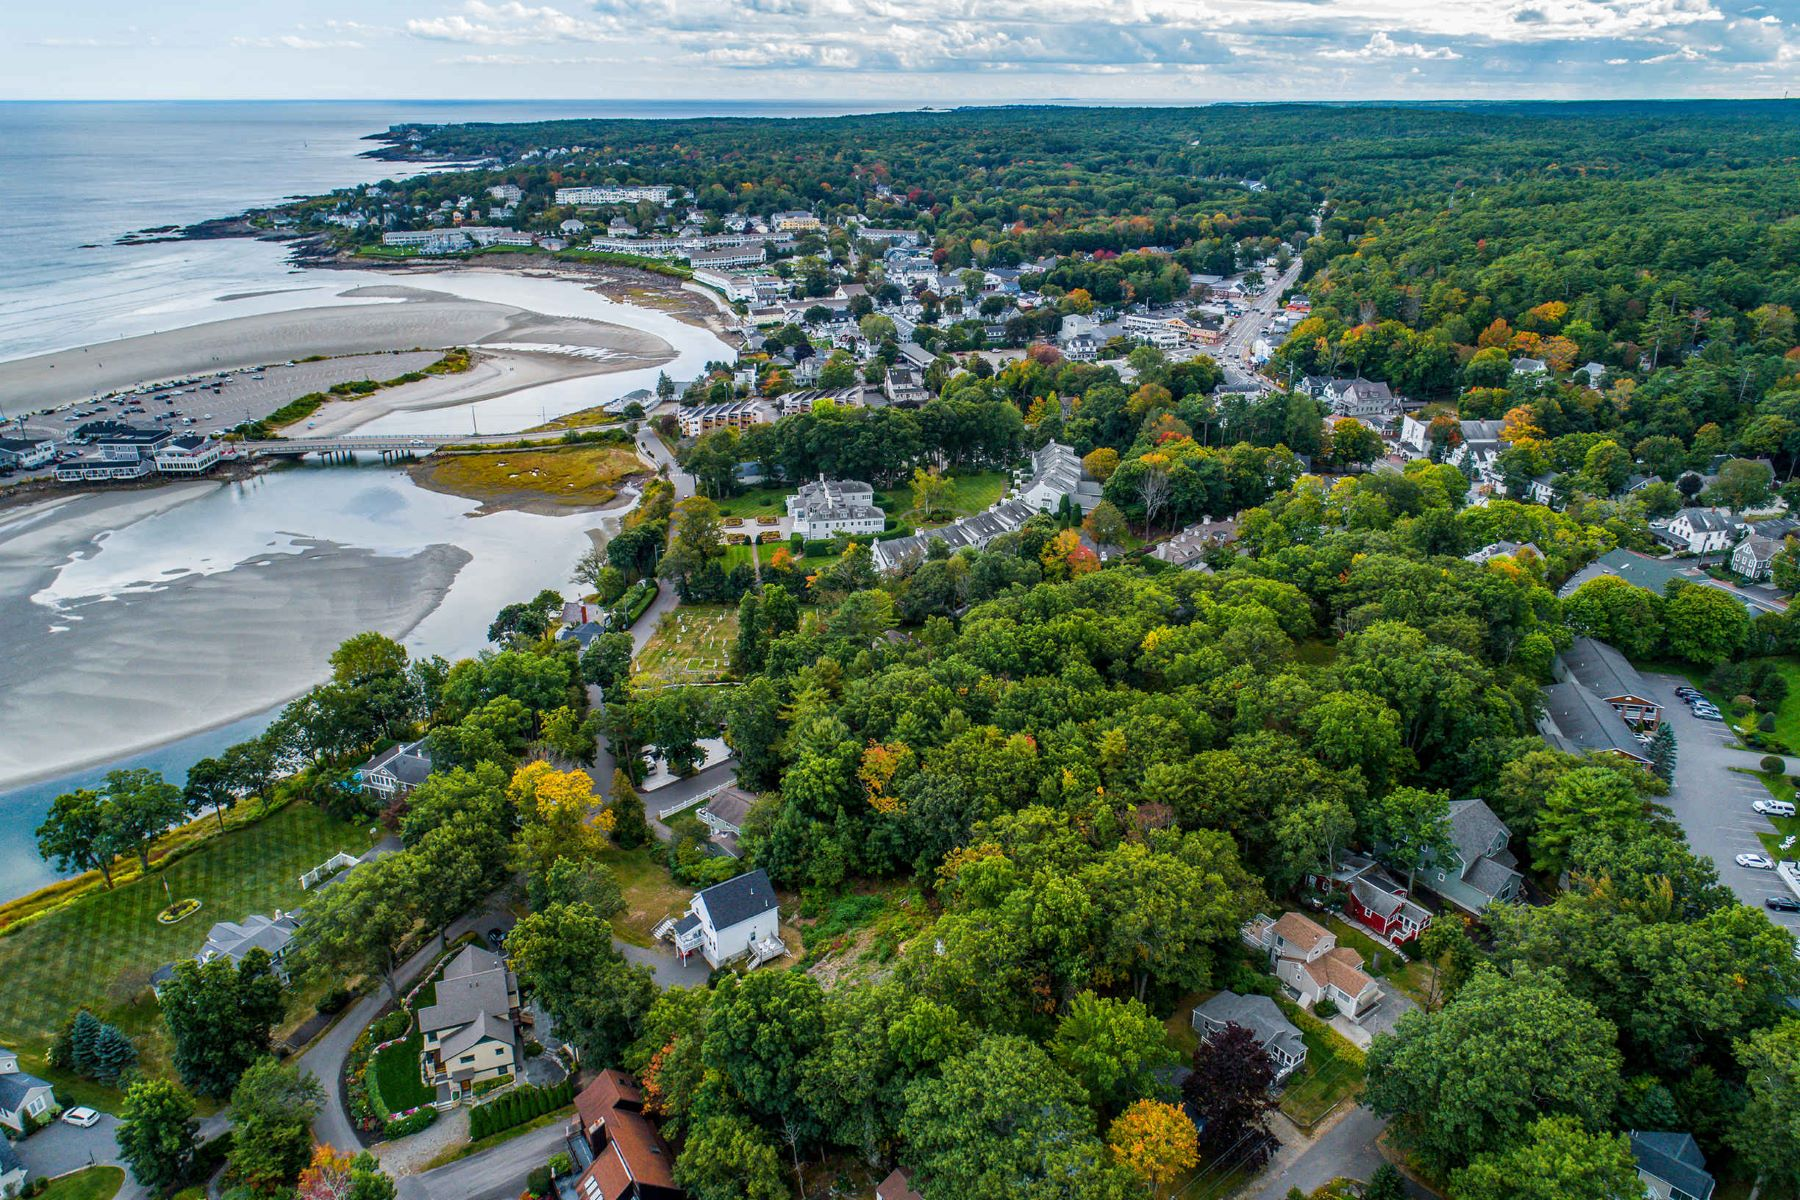 Land for Sale at Walk to Ogunquit Beach from Desirable .65 Acre Lot 57 Hoyts Lane Ogunquit, Maine 03907 United States